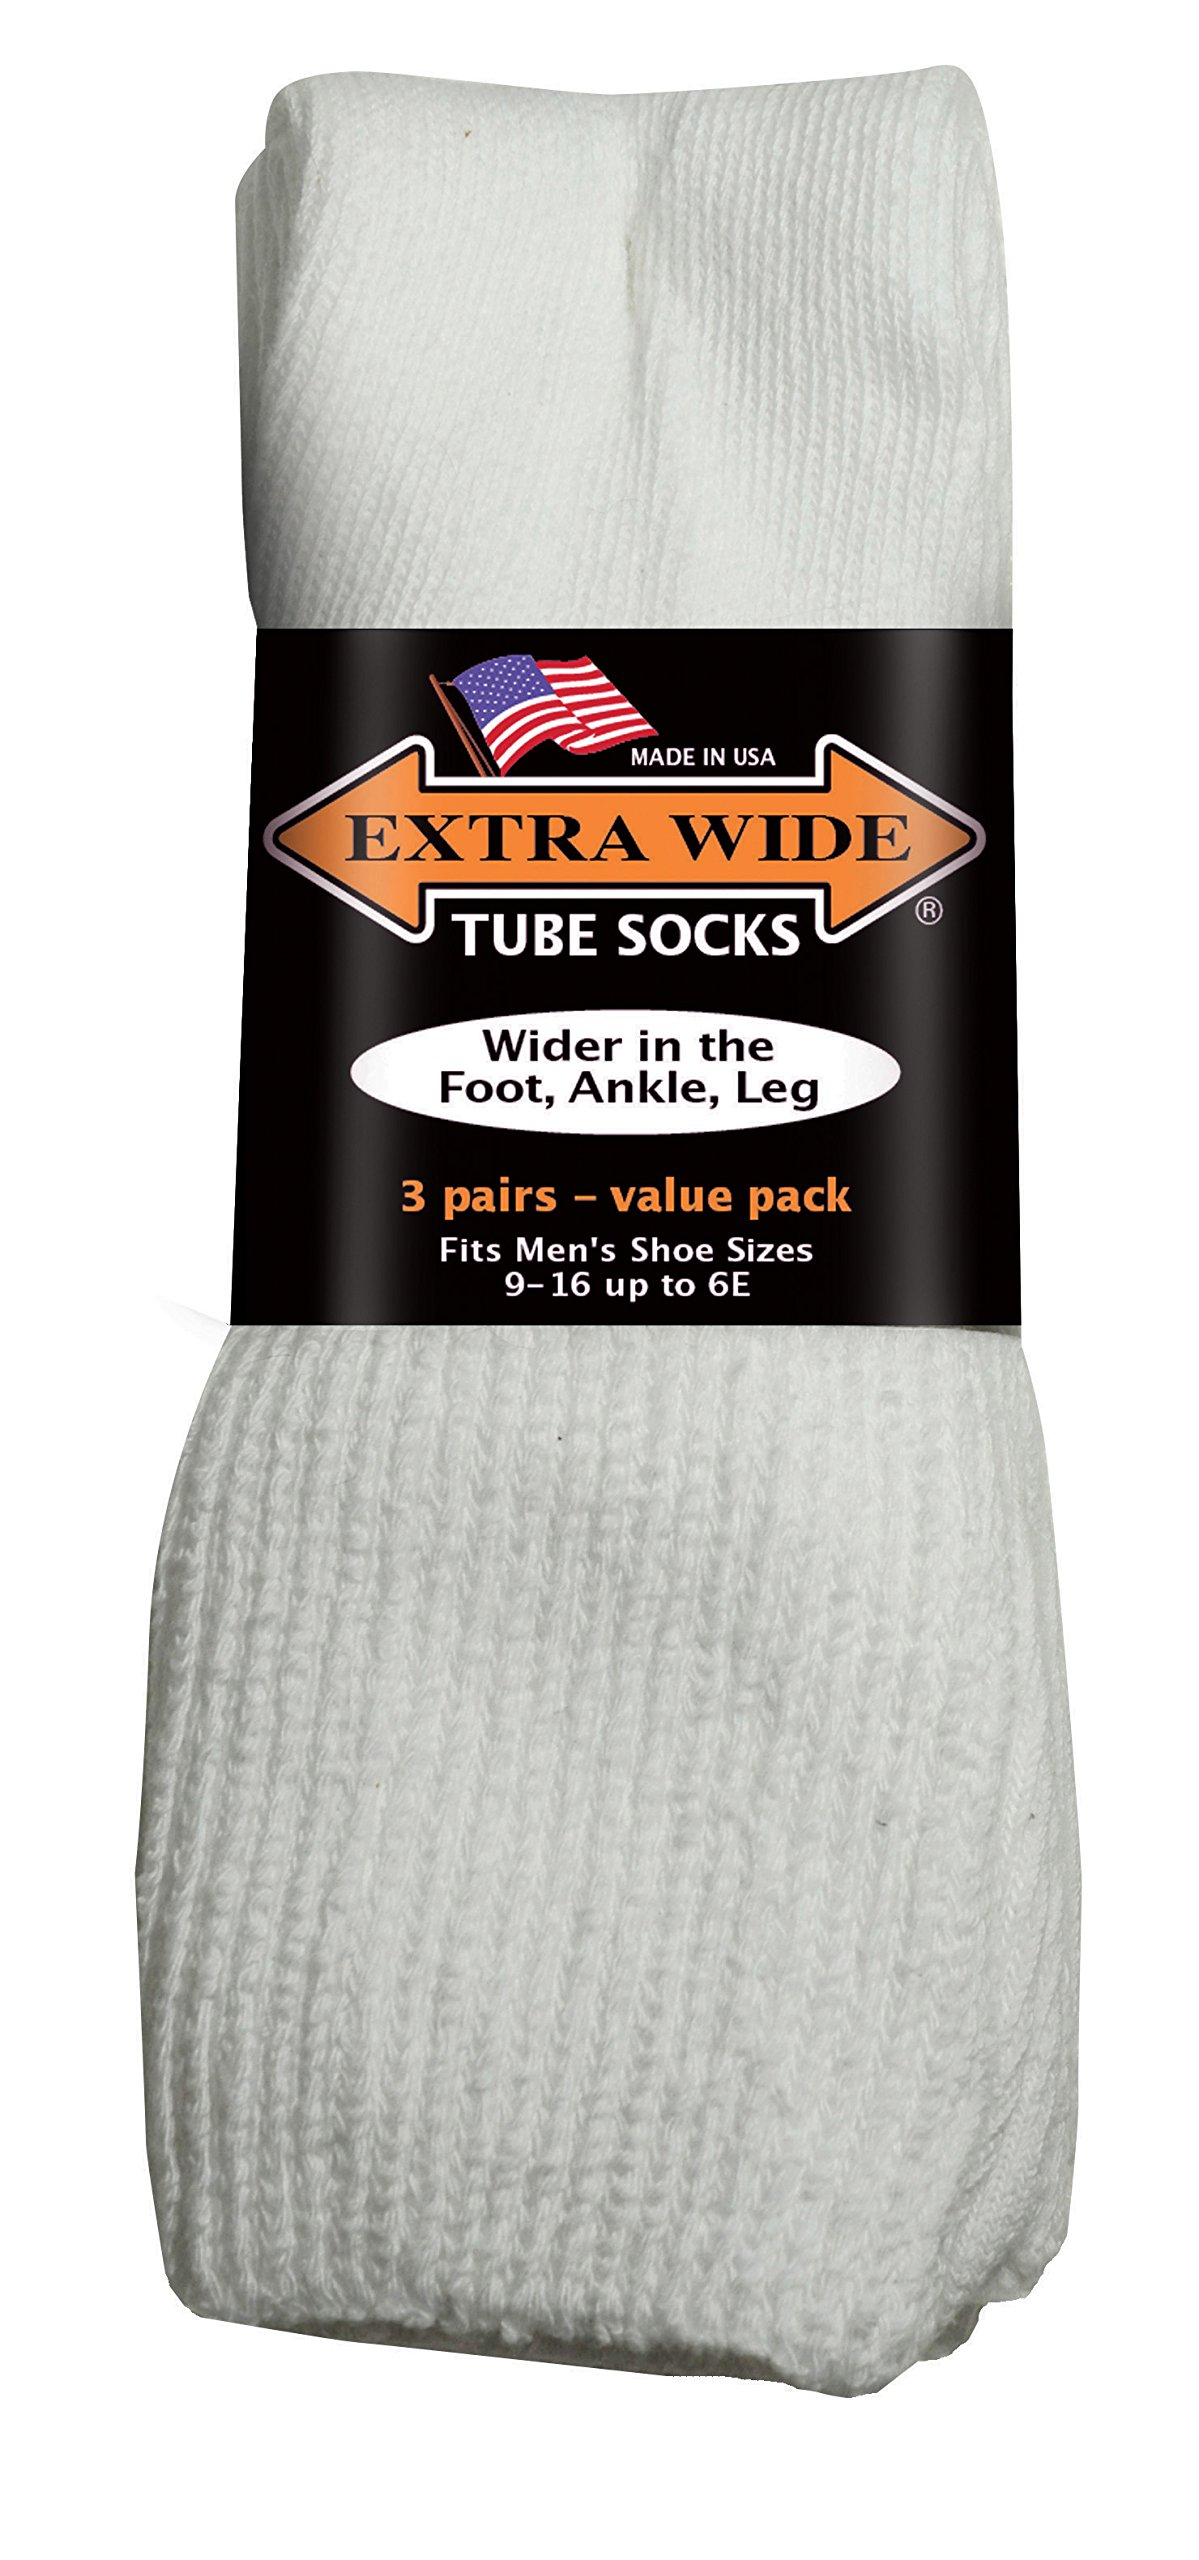 EXTRA-WIDE Tube Socks White Fit Shoes 9-15 Up to 6E 3-Pair Pack Diabetic For Shoe MADE IN USA by Extra-Wide Sock Company